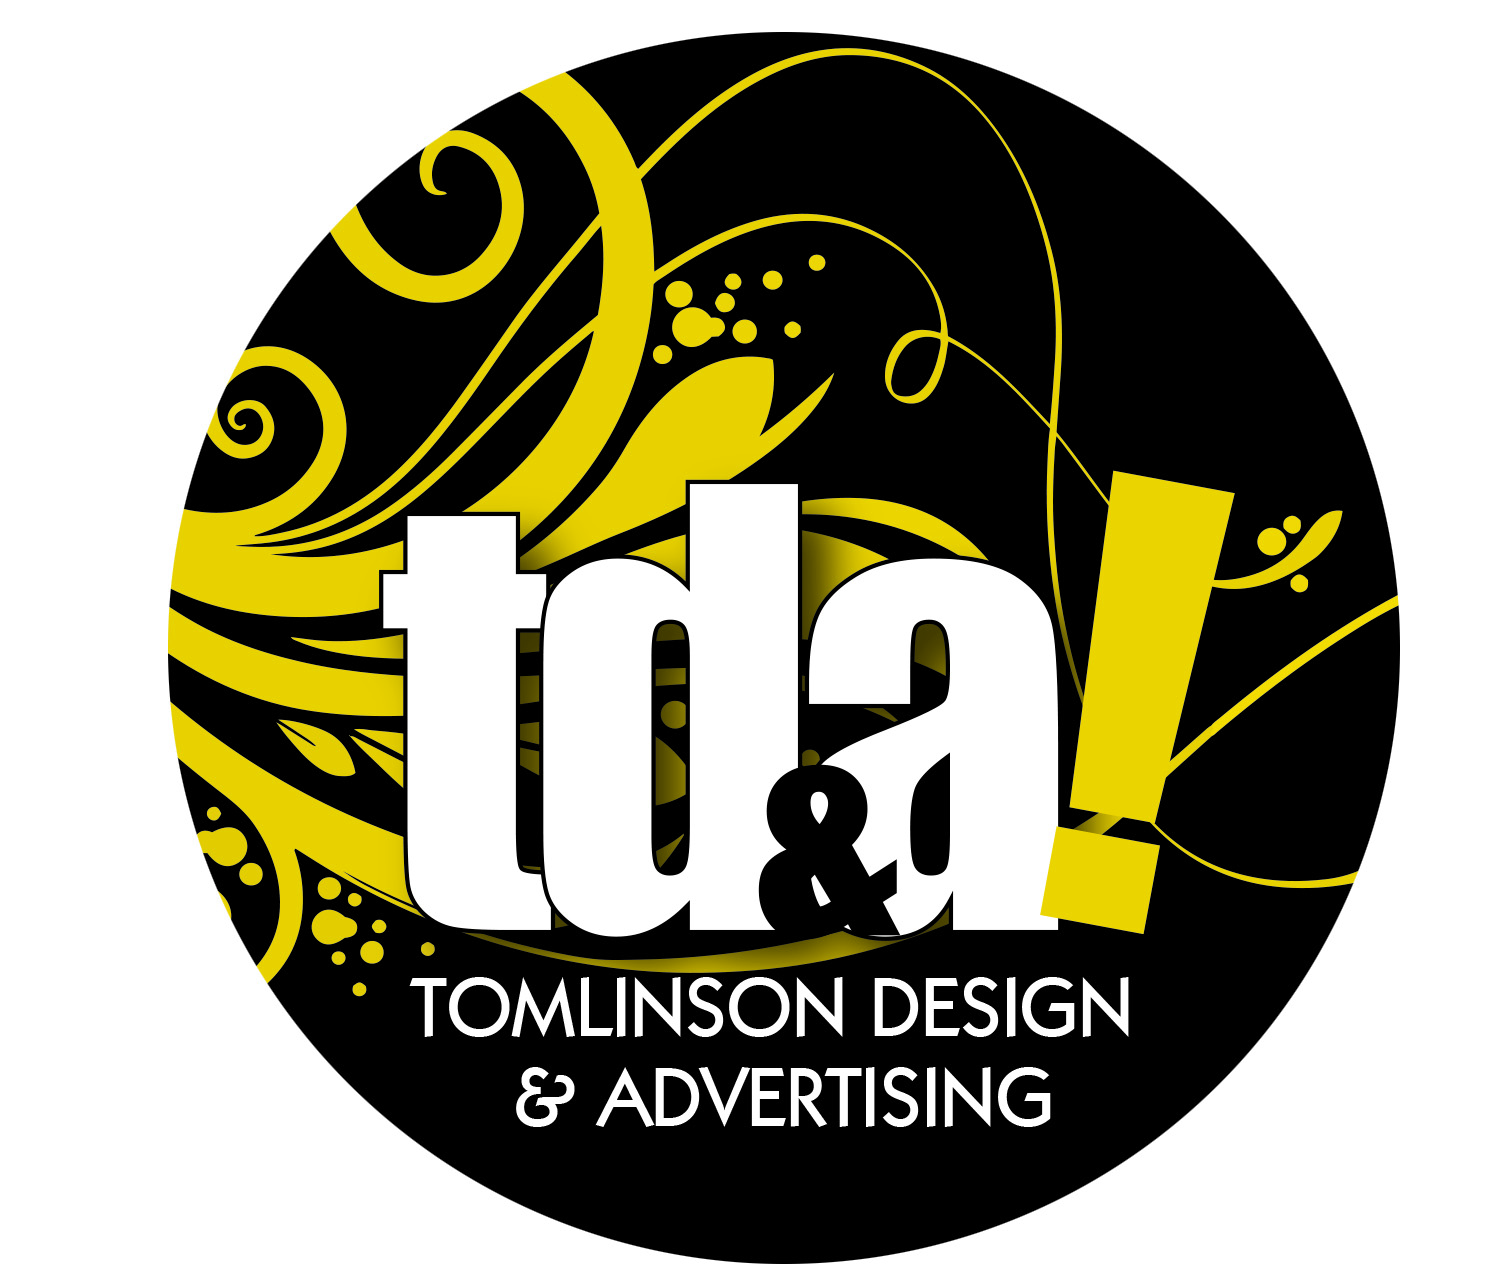 Tomlinson Design & Advertising Company Logo